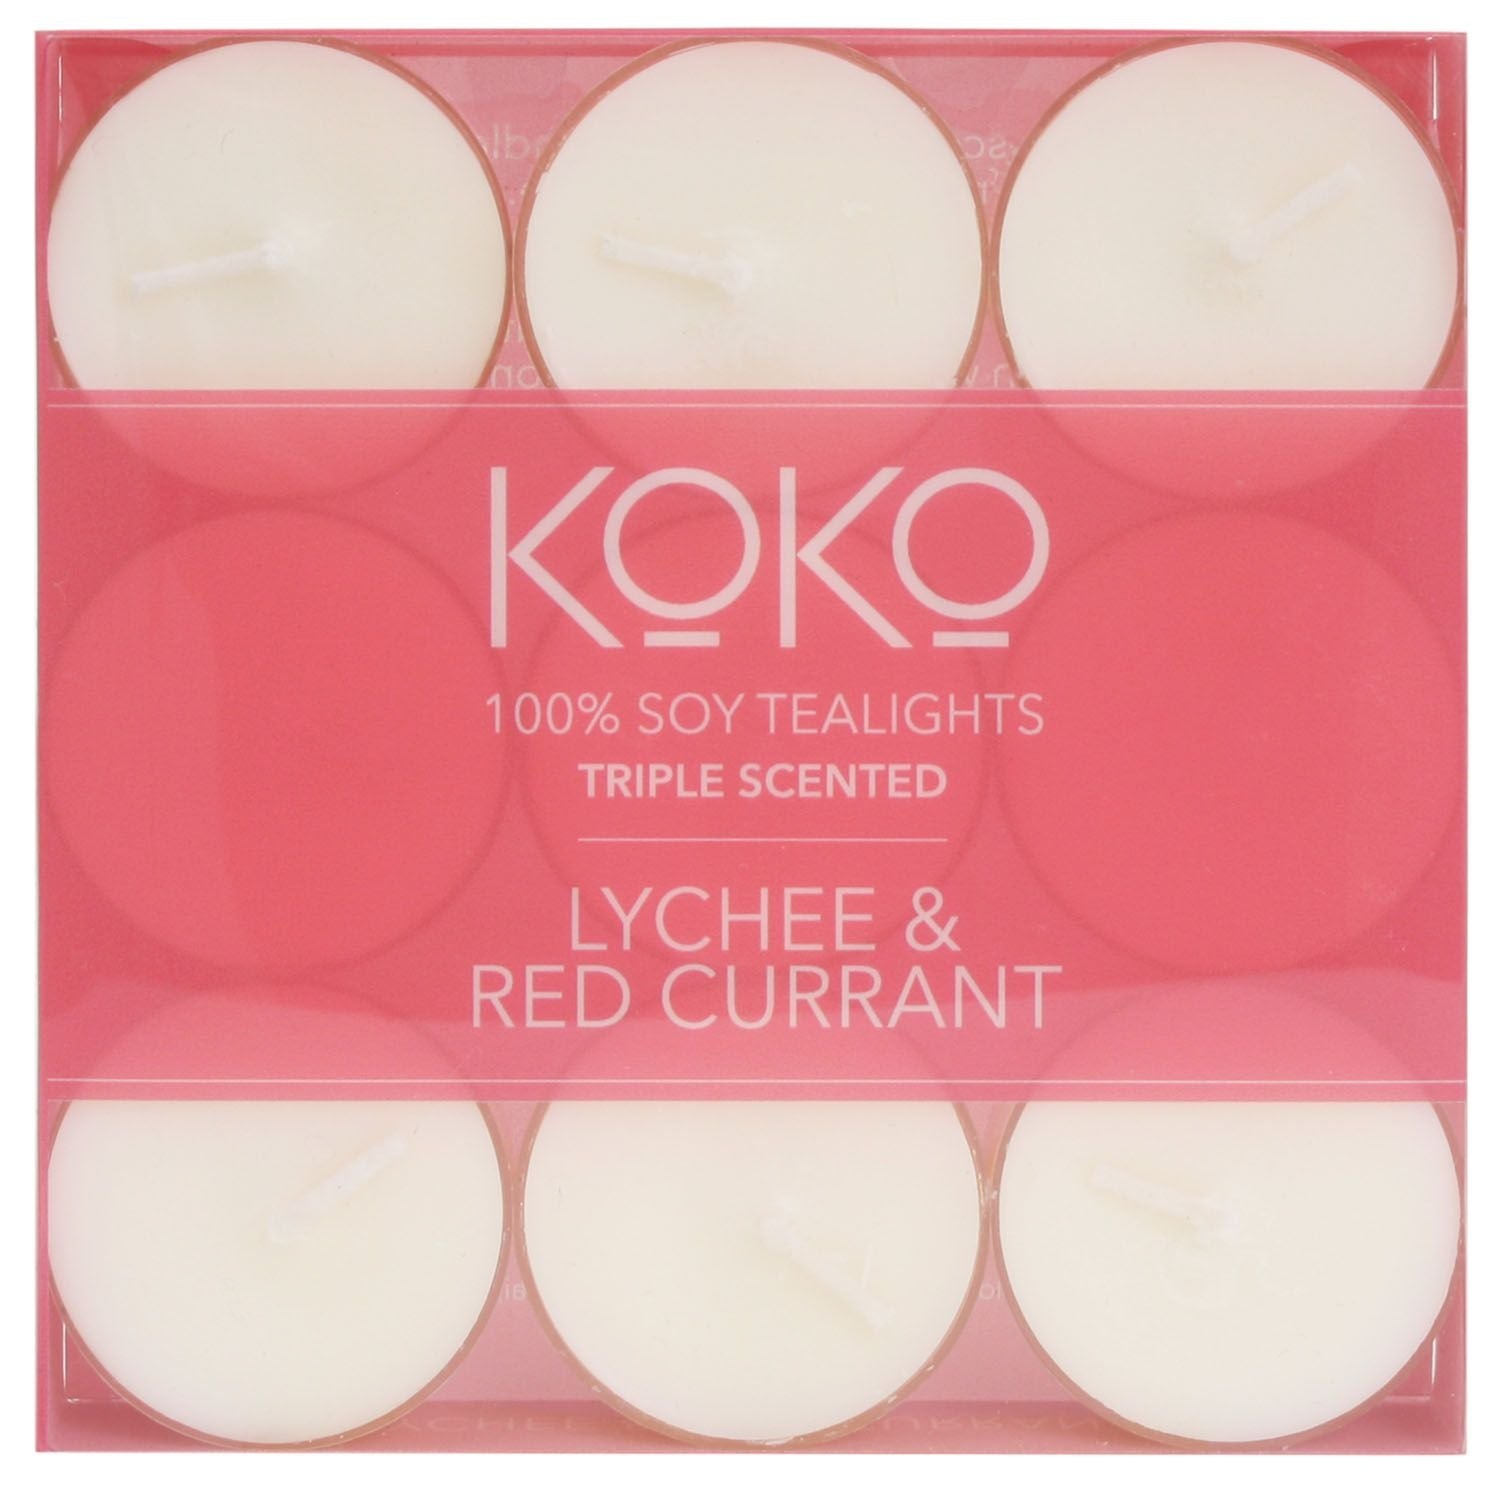 KOKO-TEALIGHTS-LYCHEE and RED CURRANT